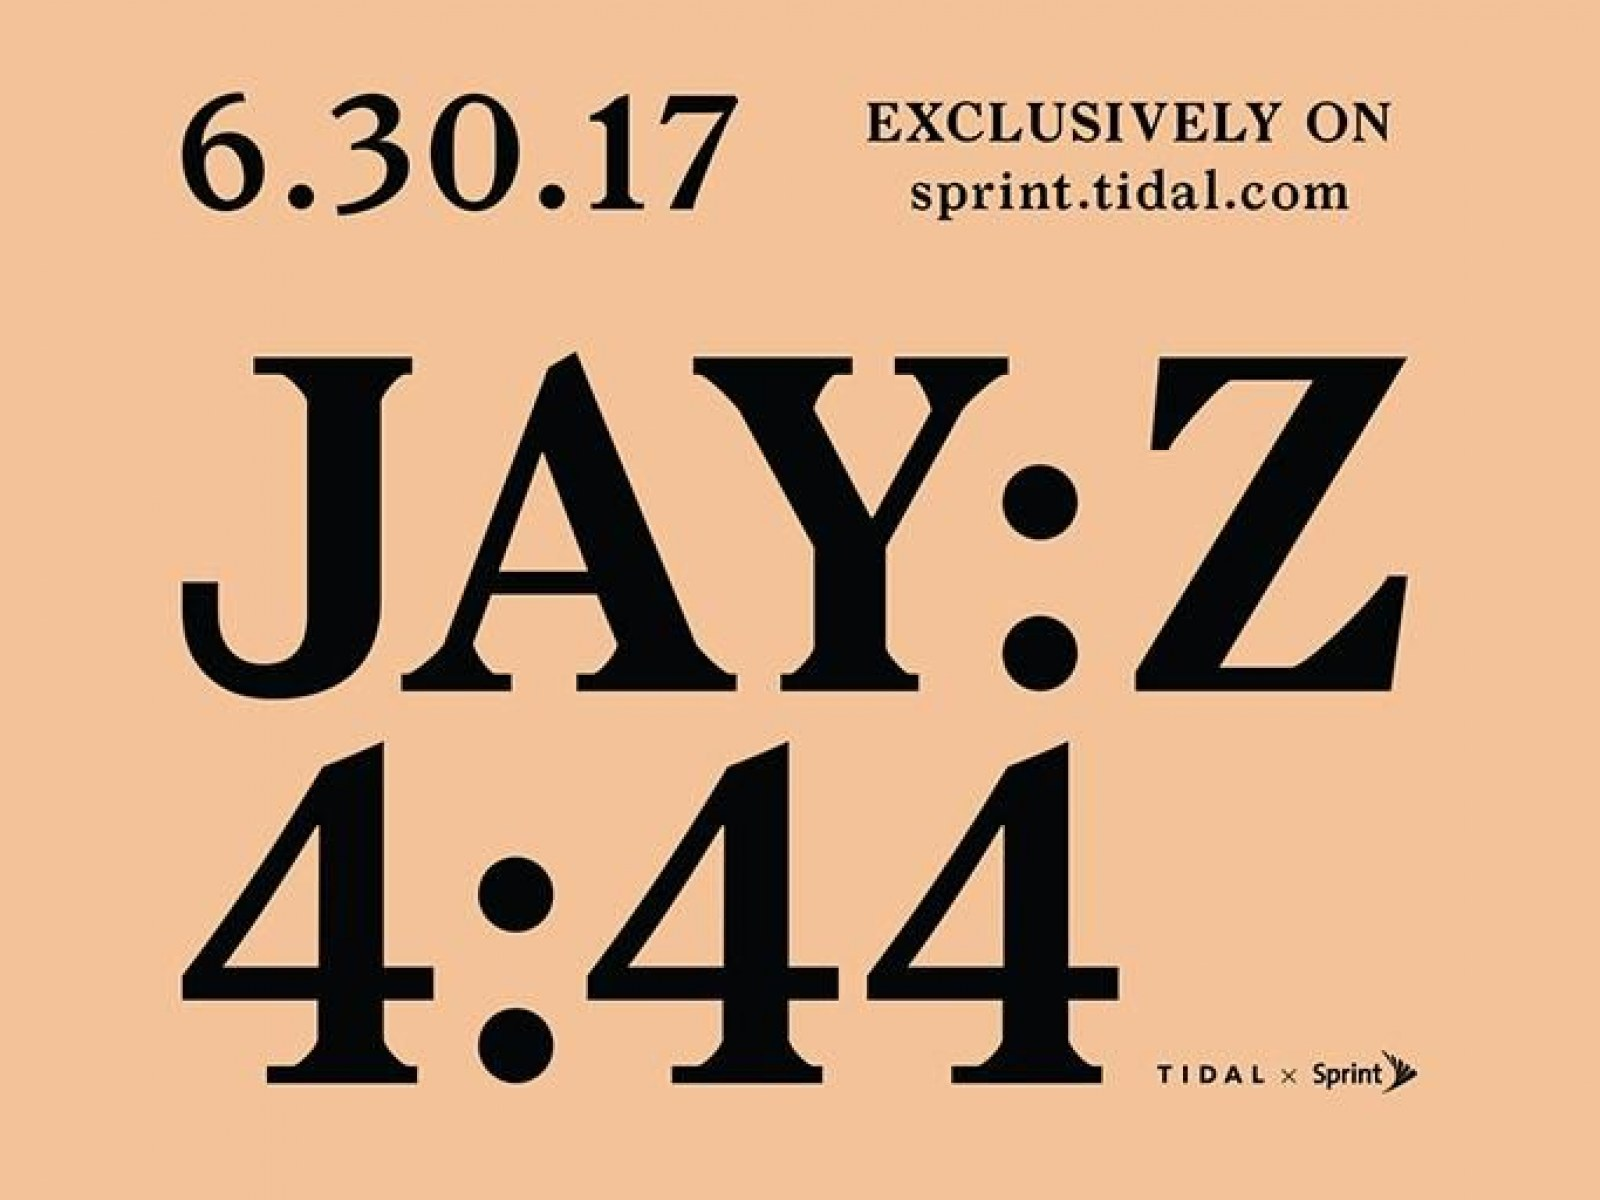 What Does Jay-Z's '4:44' Album Title Mean and Why Is 4 So Important?